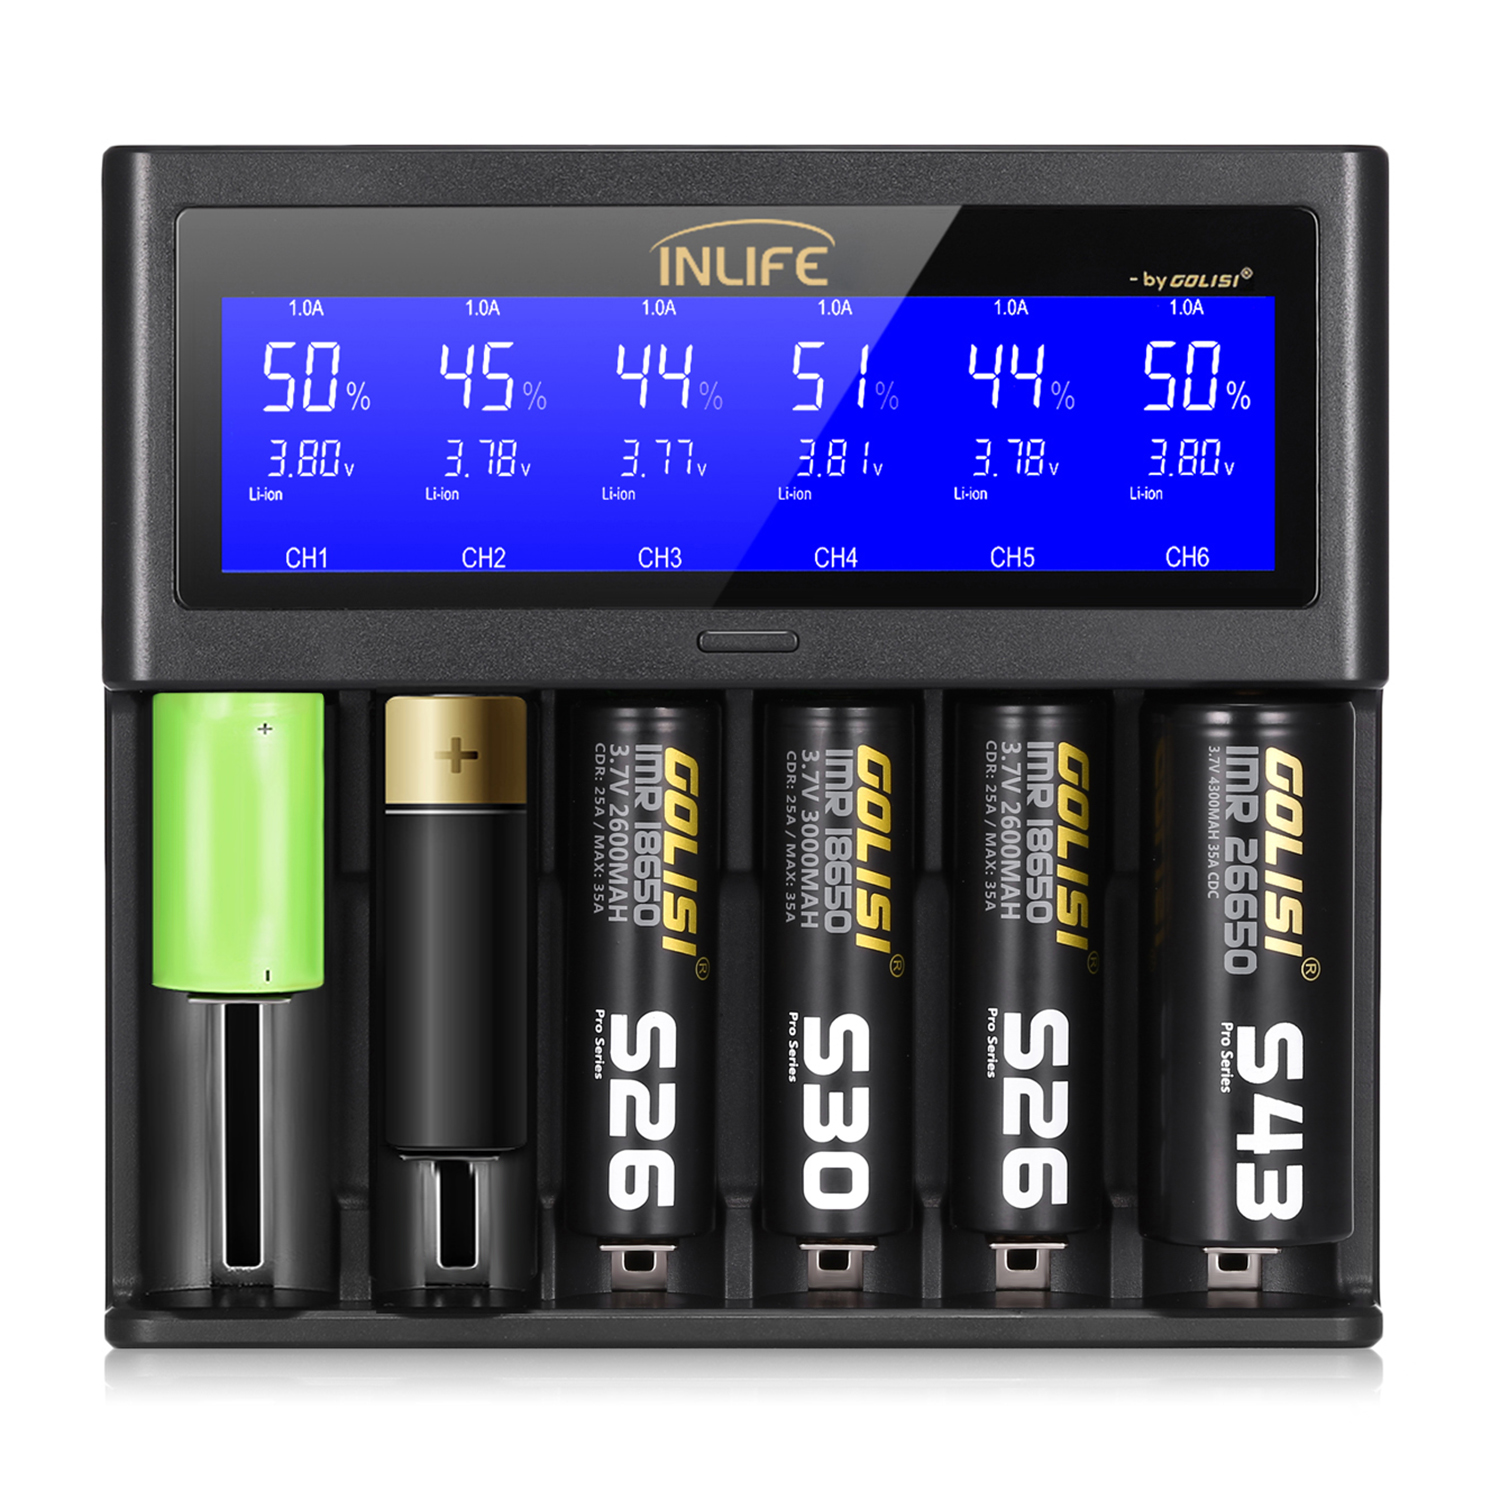 Golisi Inlife S6 2A 1A 0.5A Smart Battery Charger LCD Rechargeable Lithium-ion / NiMH / NiCd